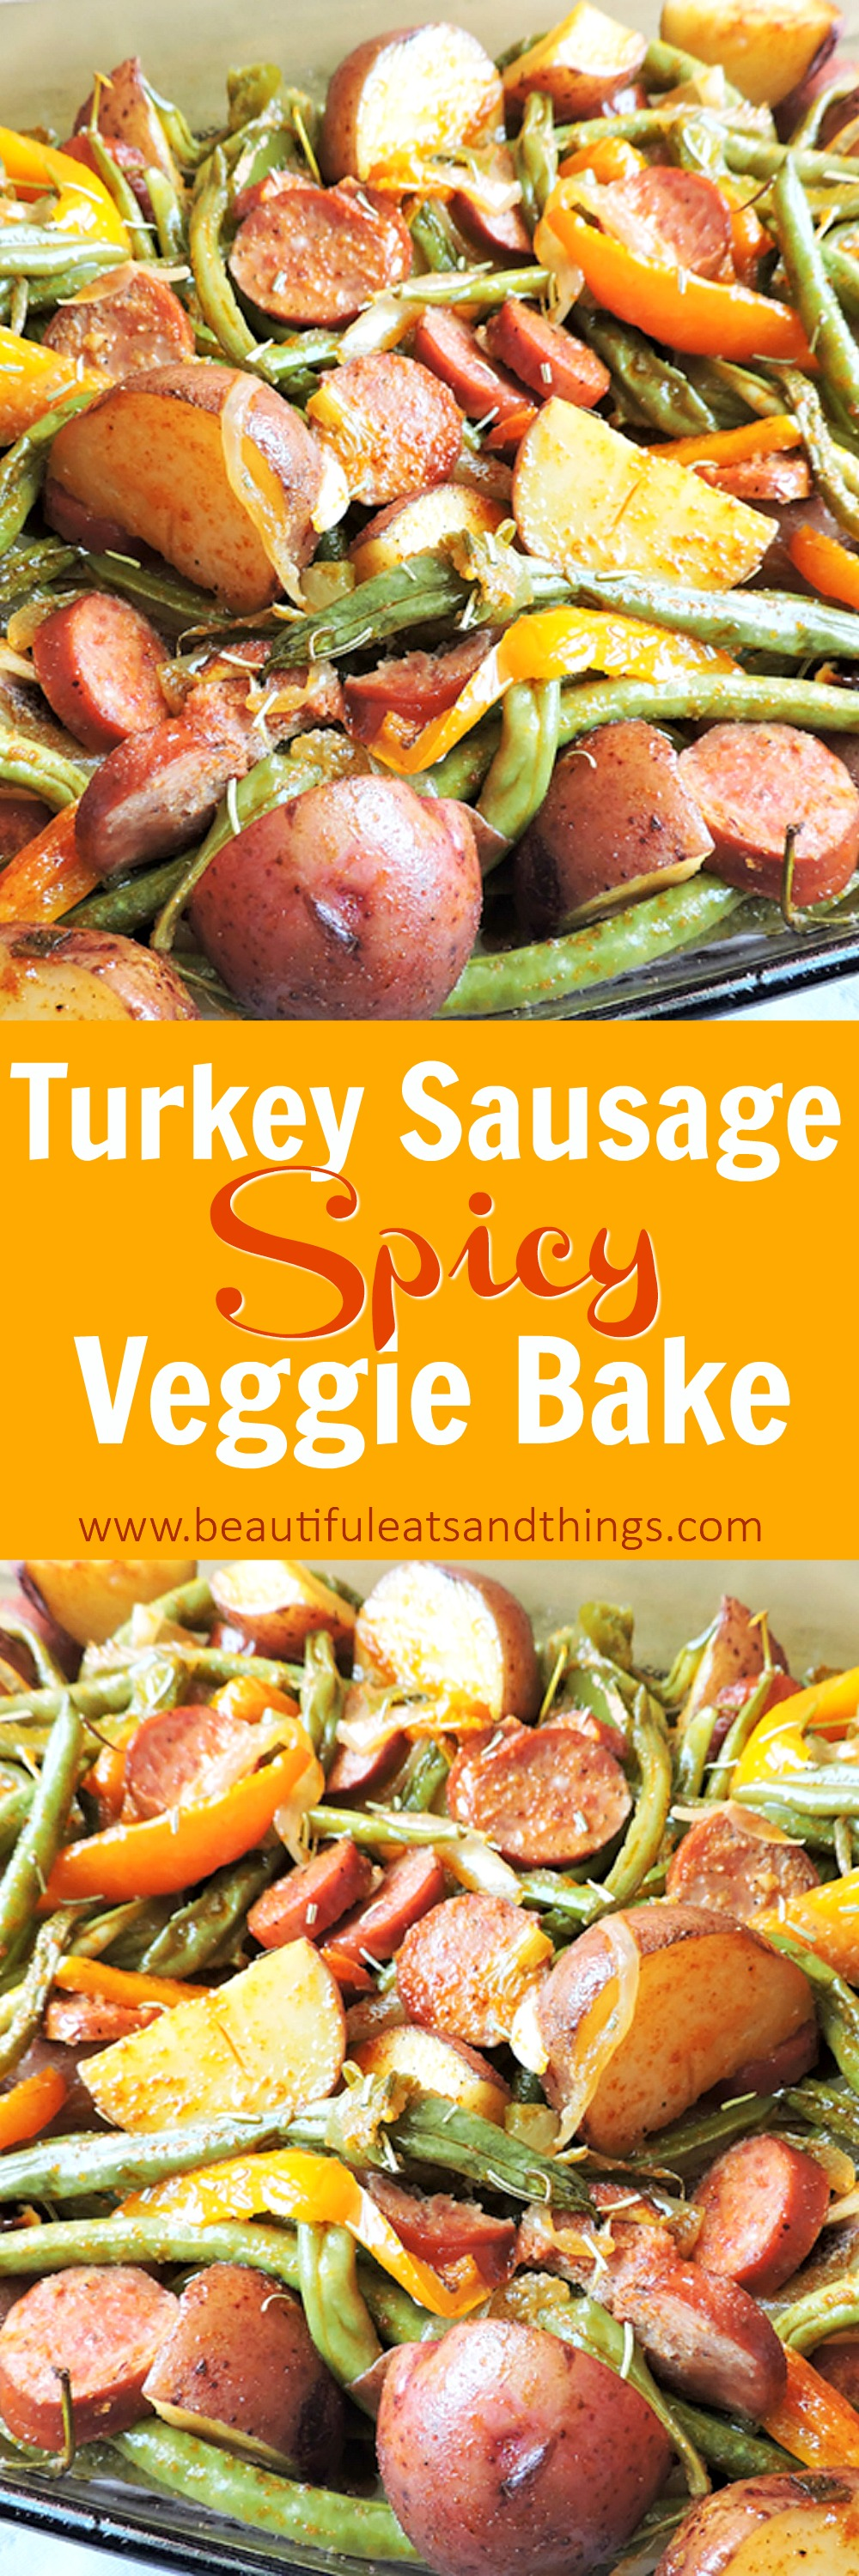 Spicy Turkey Sausage Veggie Bake